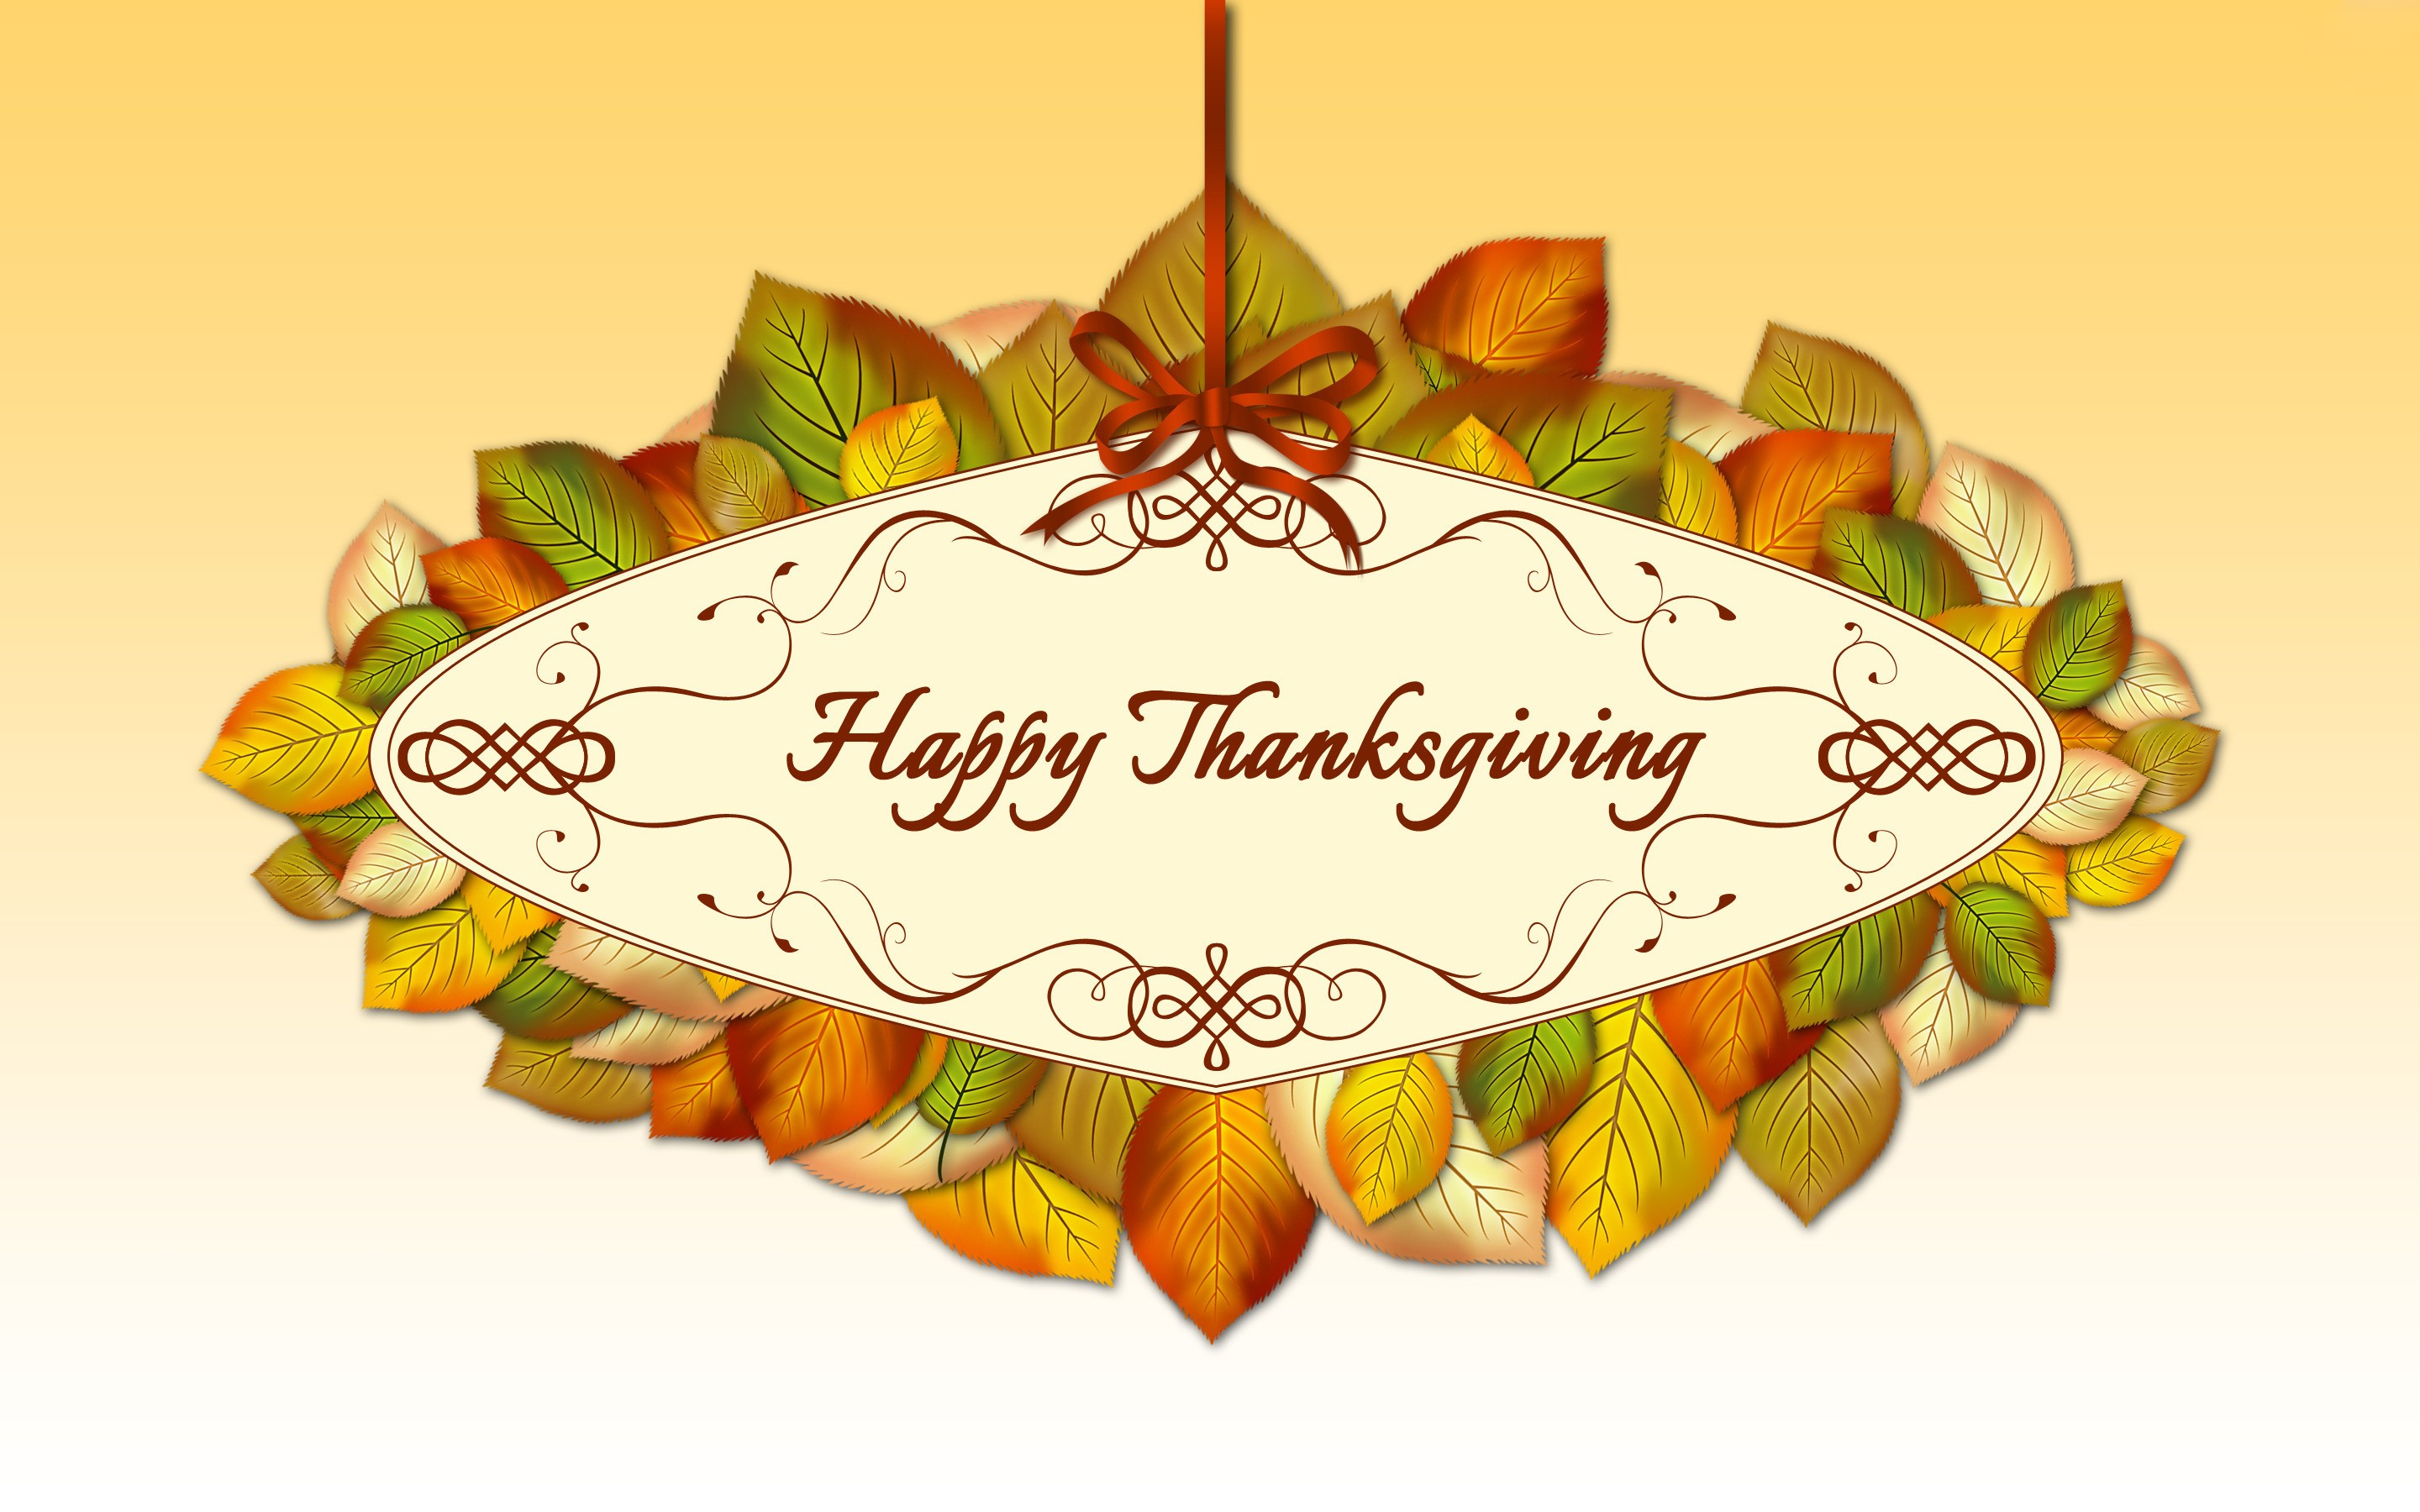 Happy thanksgiving greeting cards techicy happy thanksgiving greeting cards happy thanksgiving greeting cards m4hsunfo